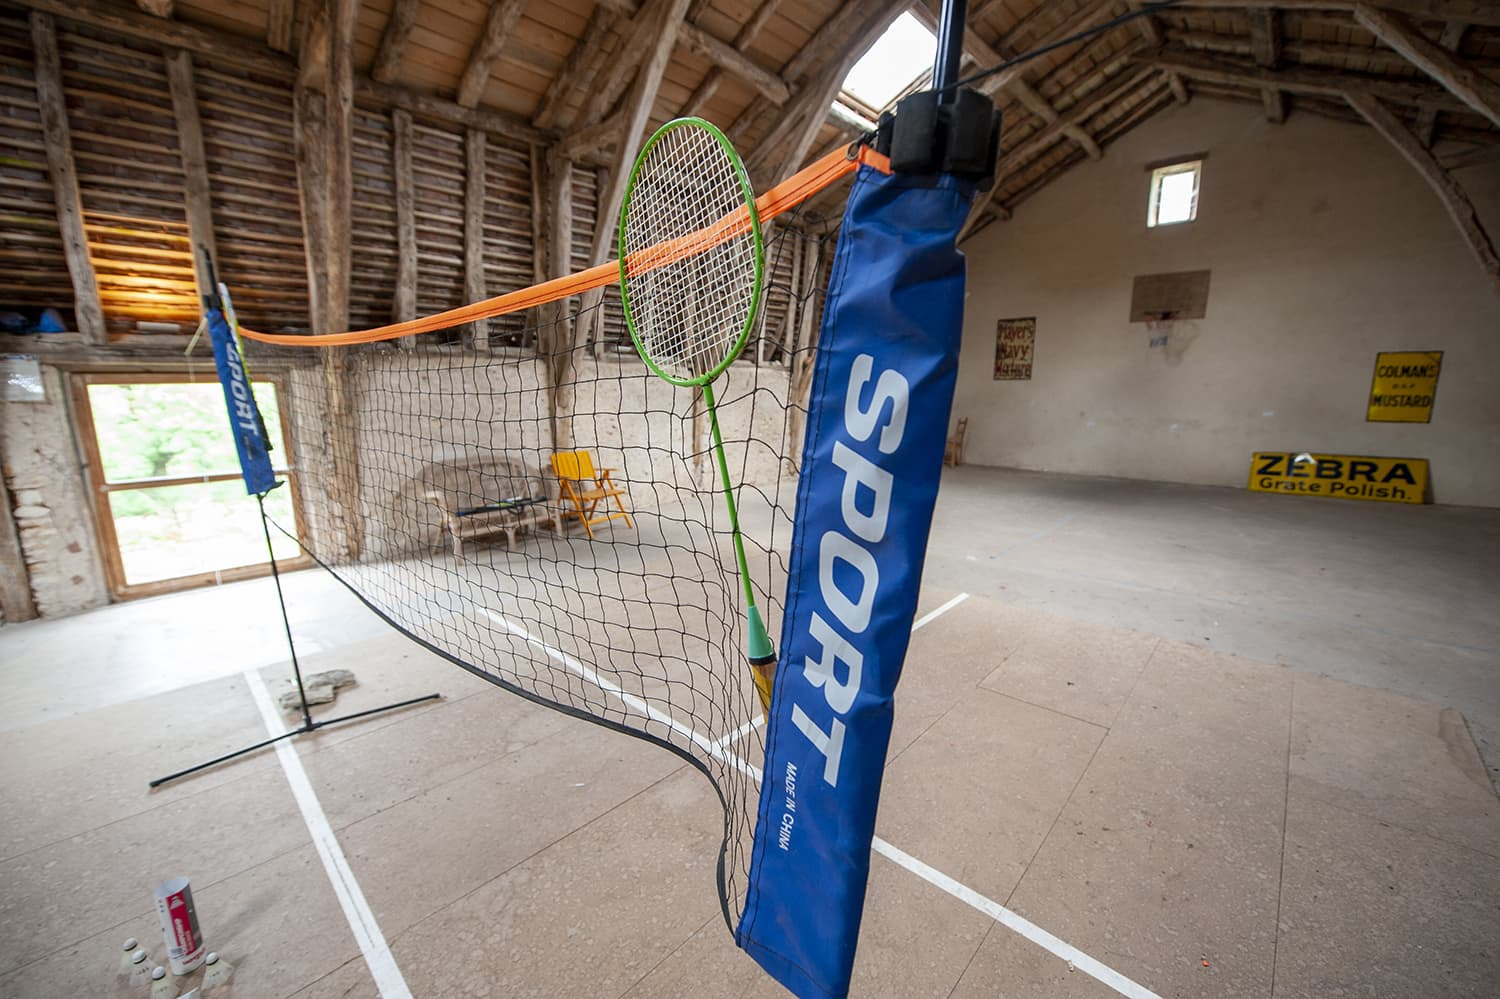 Badminton net in barn